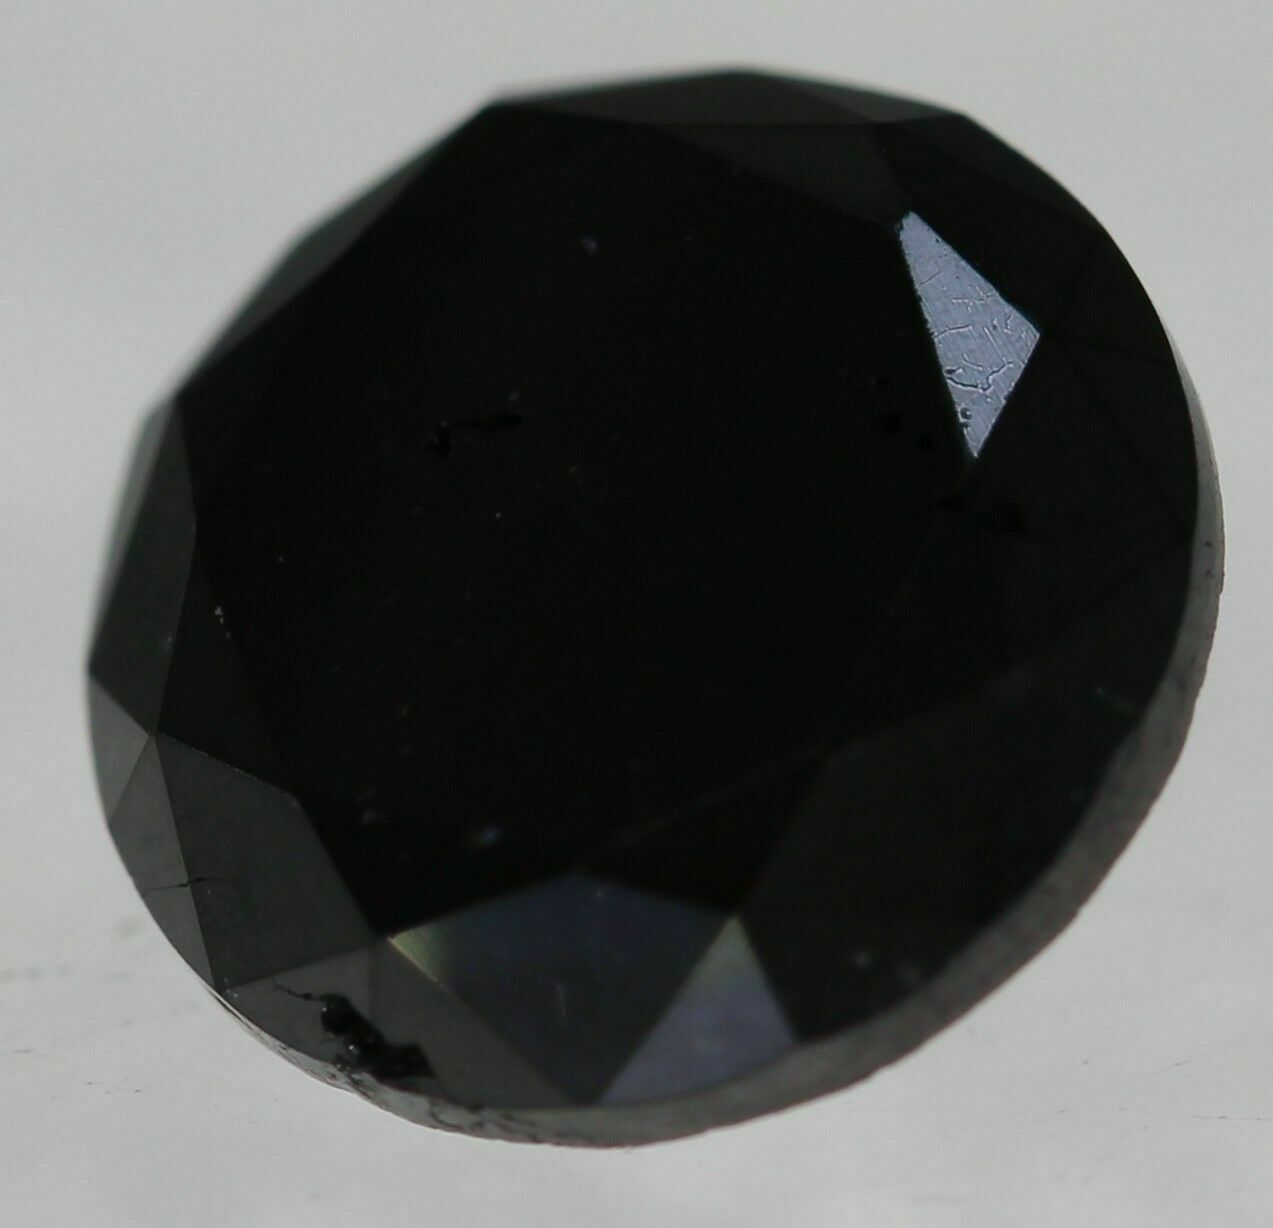 Certified-132-Carat-Fancy-Black-Round-Brilliant-Natural-Diamond-696mm-50-153422604669-3.JPG